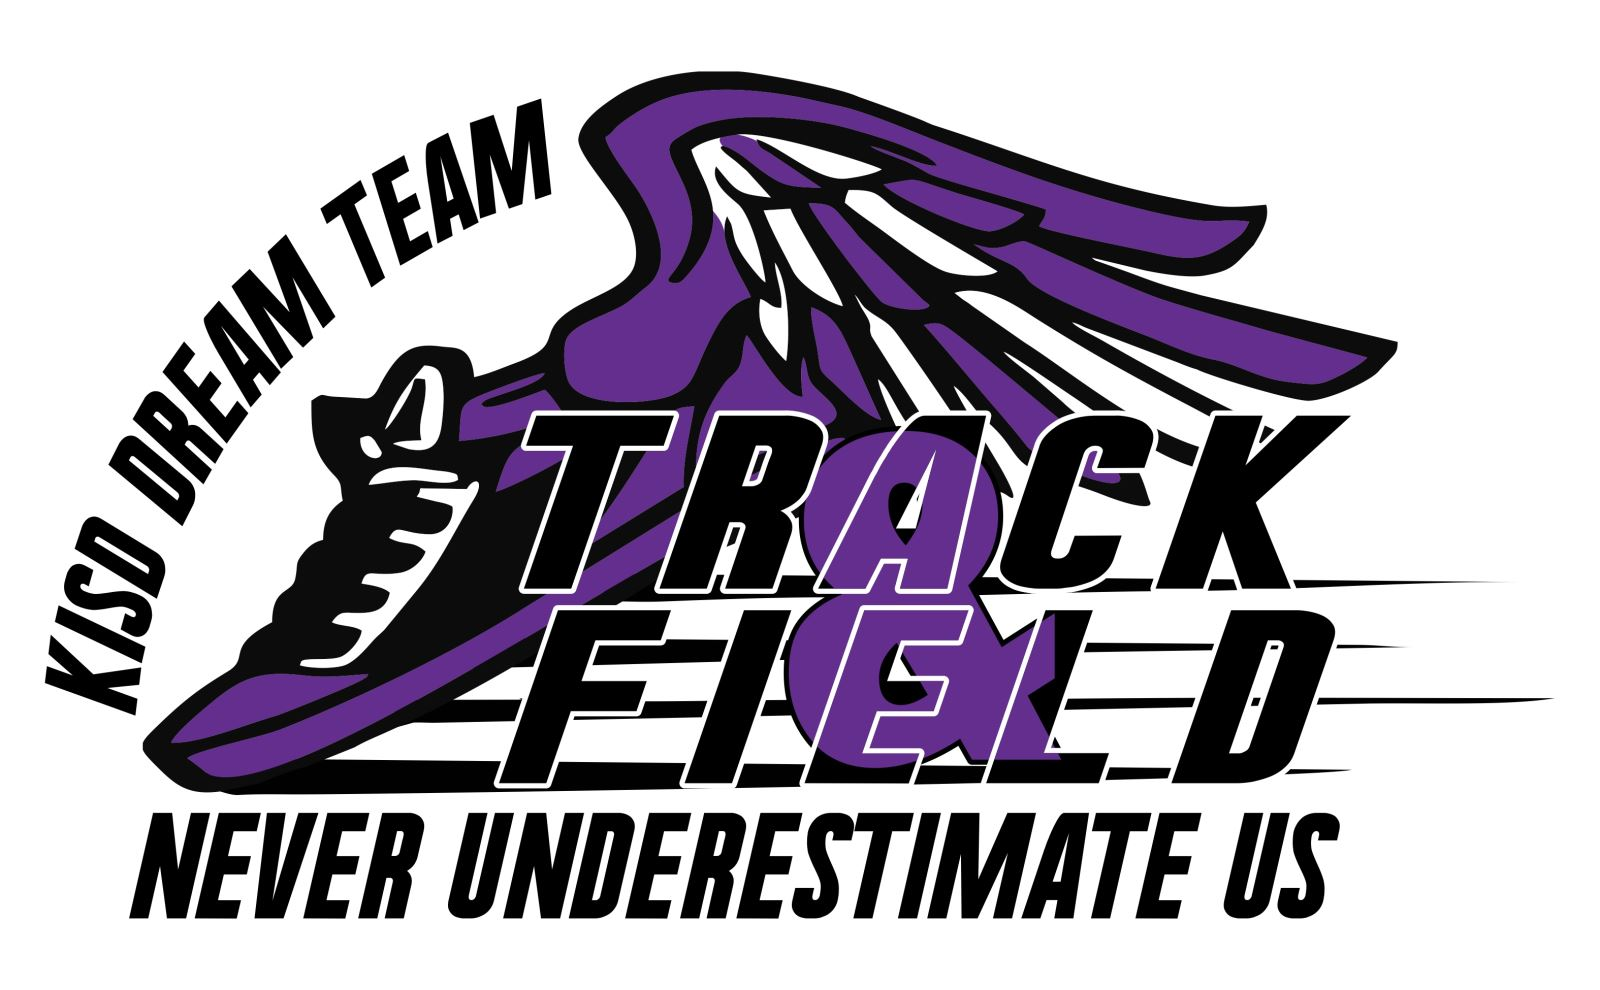 KISD Dream Team Track and Field Never Underestimate Us Purlpe and Black wing shoe emblem